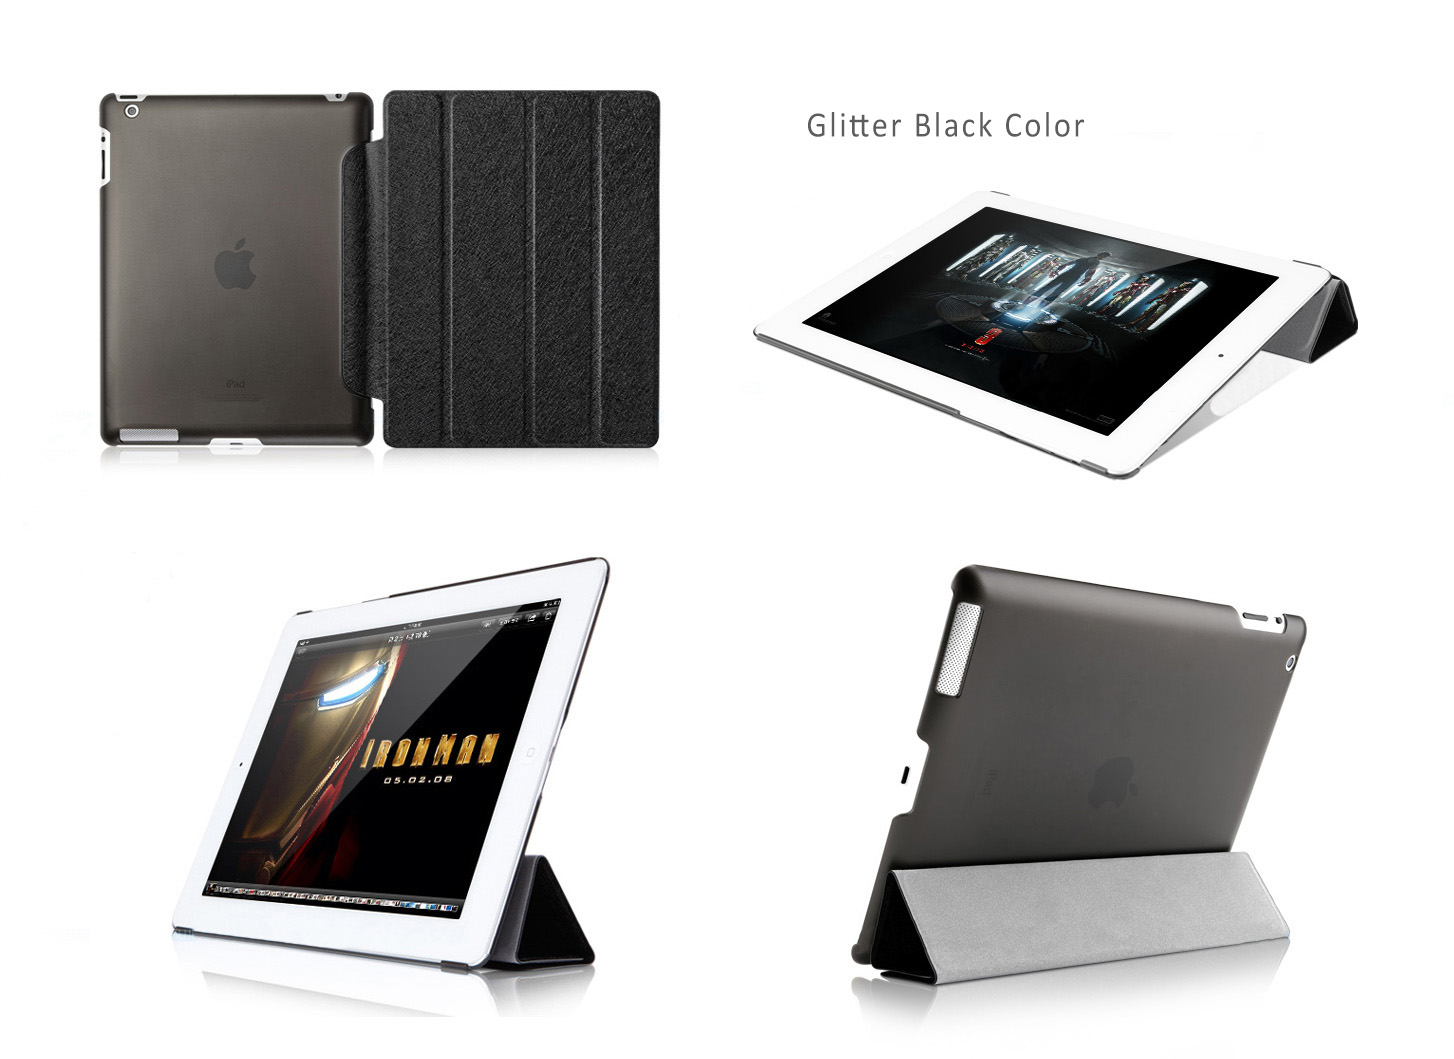 HOCO Smart Cover ICE Series for iPad 2,3,4 - Glitter Cool Colors with Translucent Back Shell, Auto-sleep Feature.